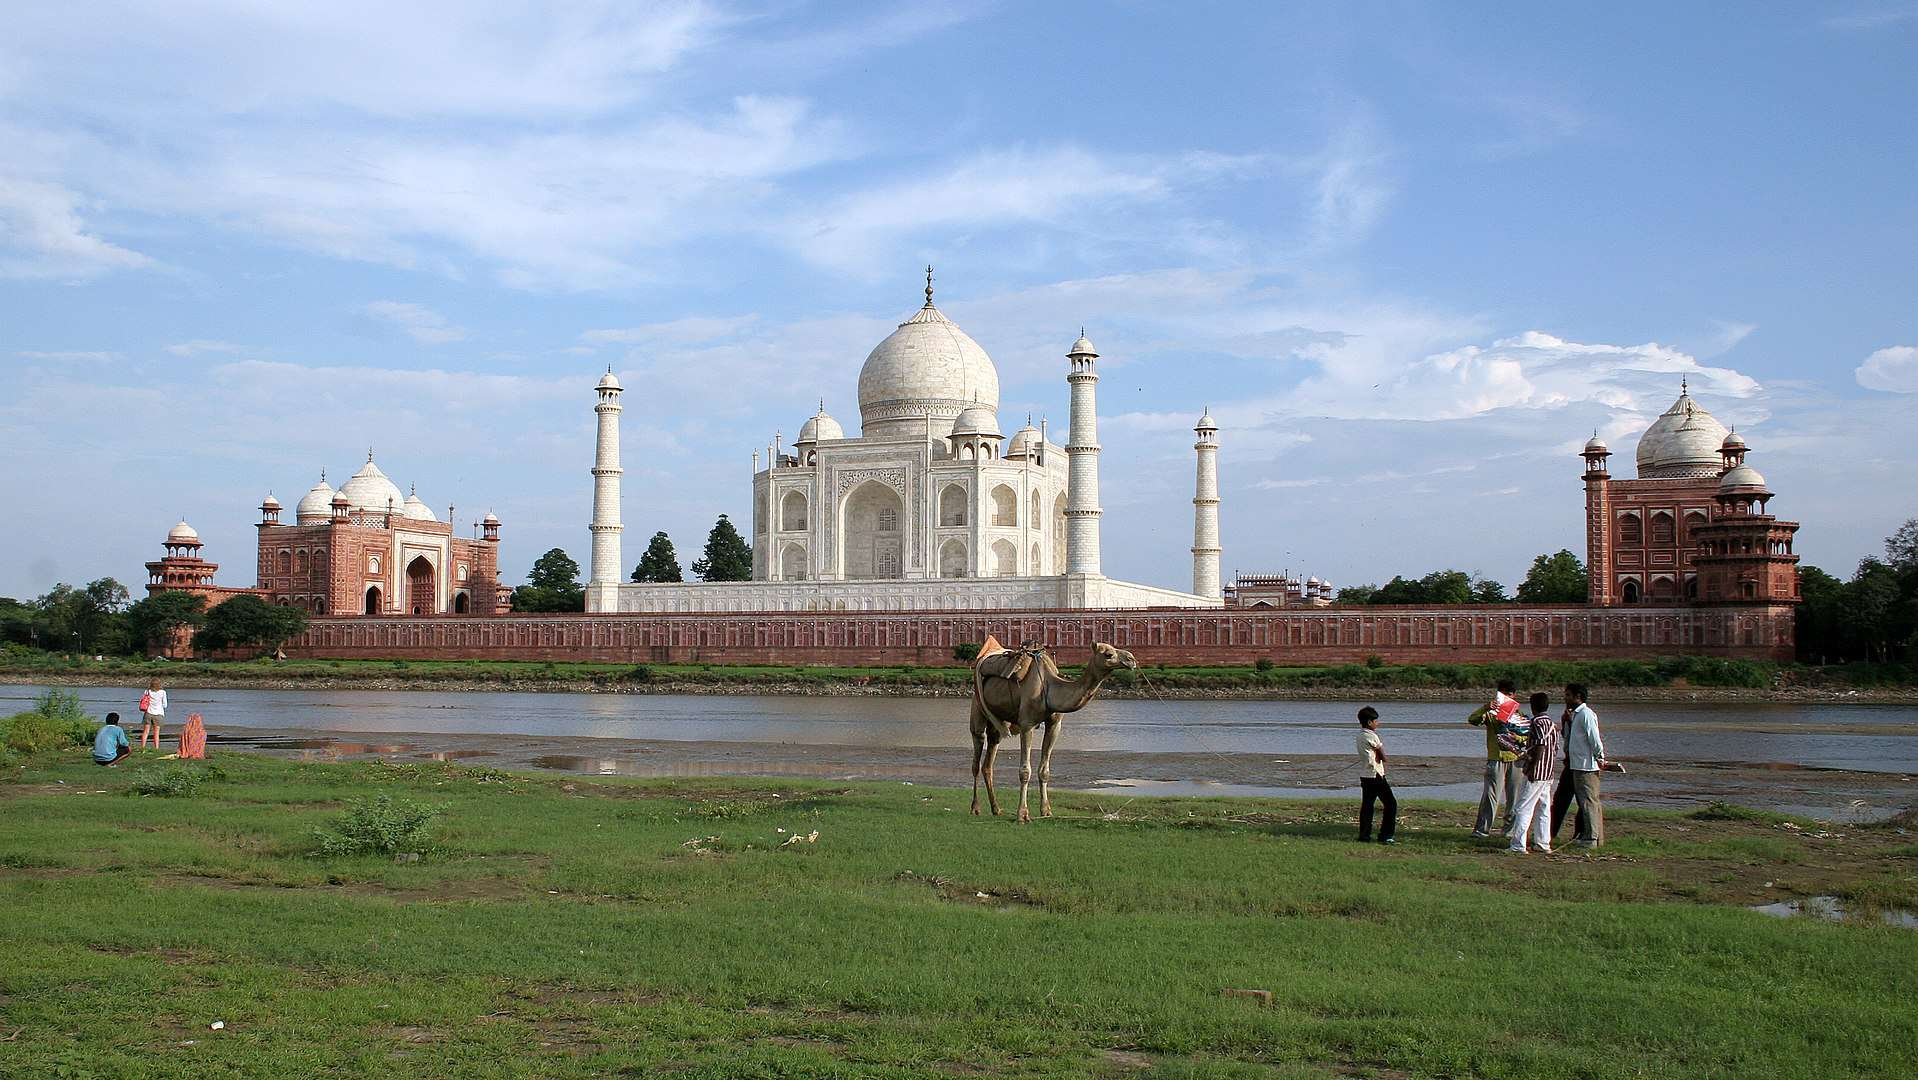 Taj Mahal Facts, Taj Mahal and the Yamuna River